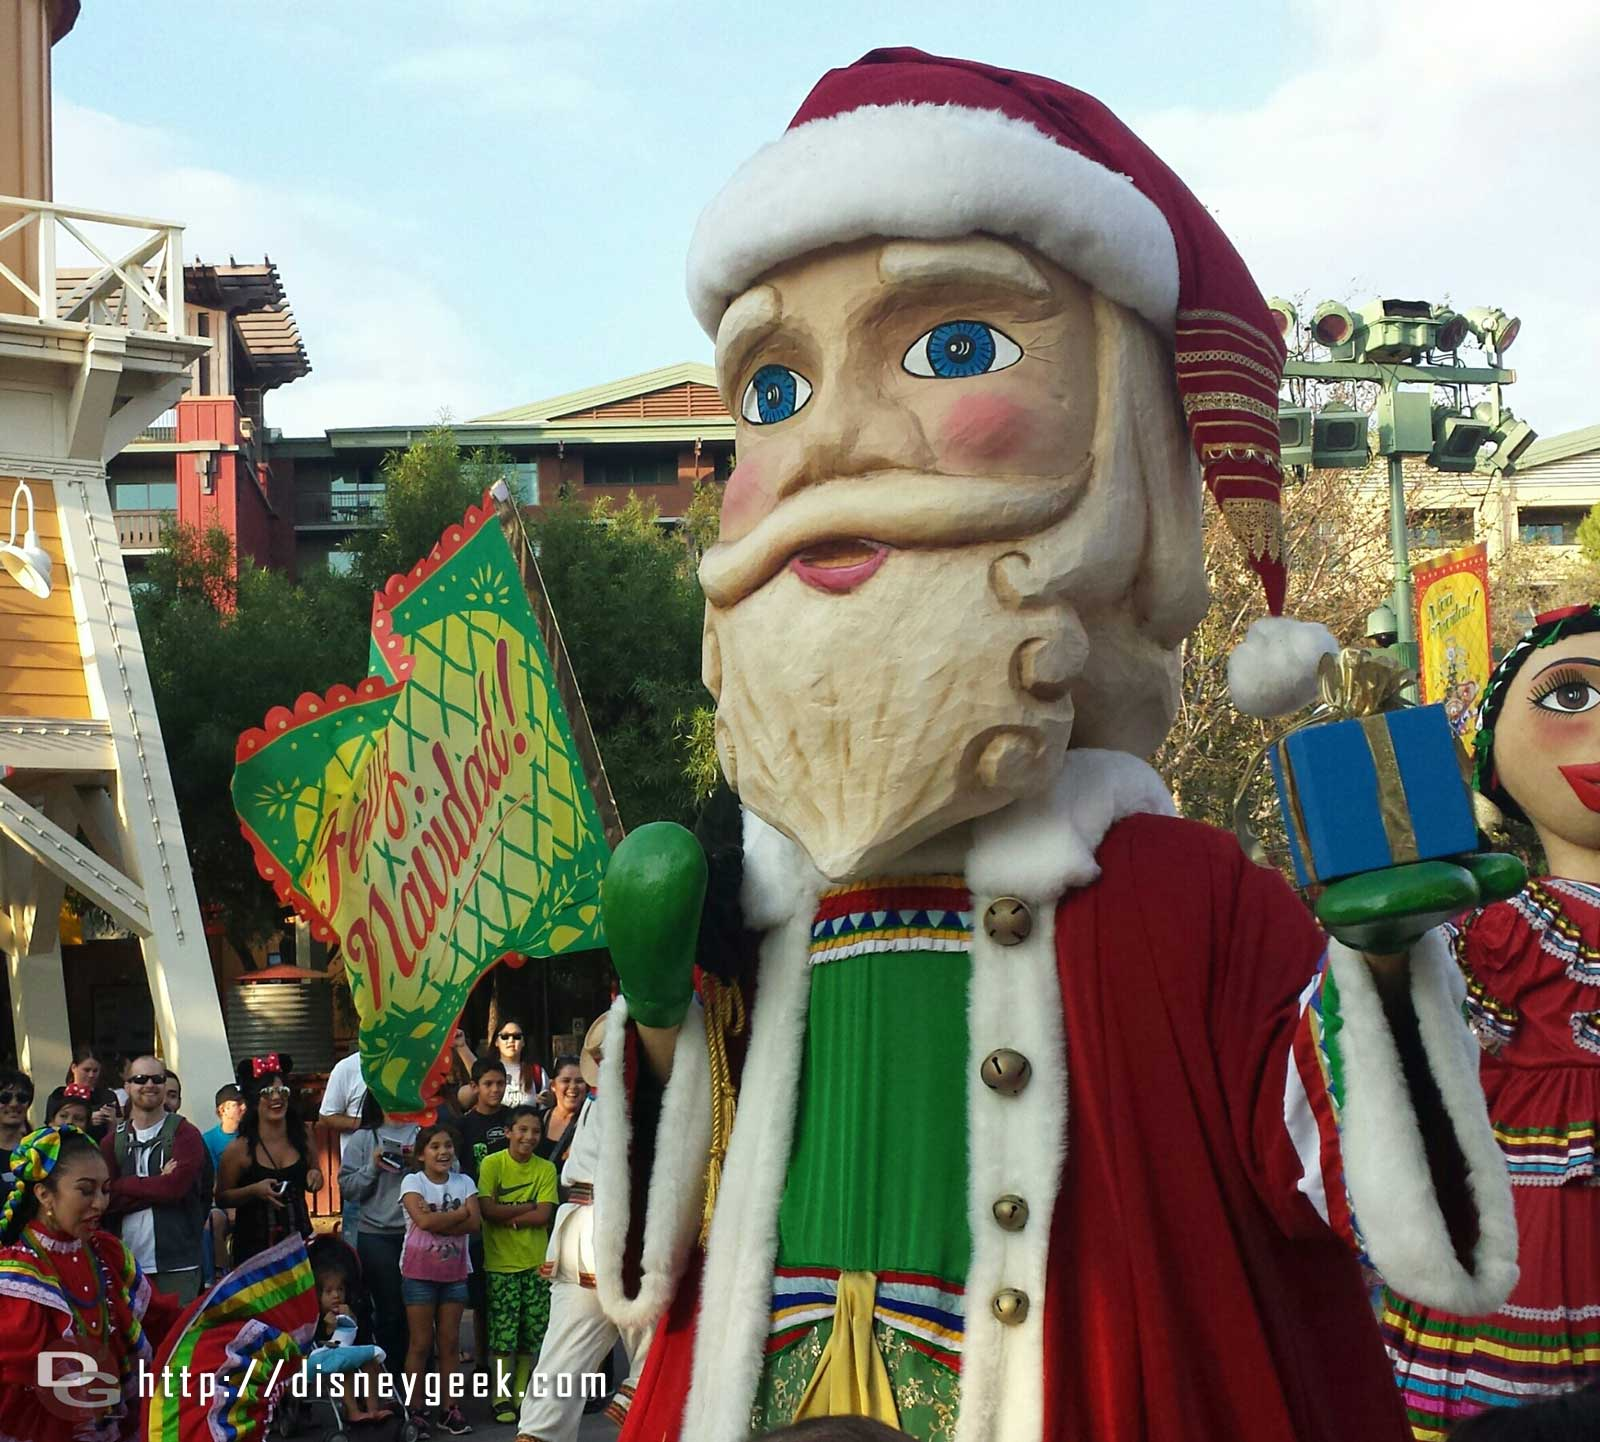 ¡Viva Navidad! has returned to Paradise Gardens